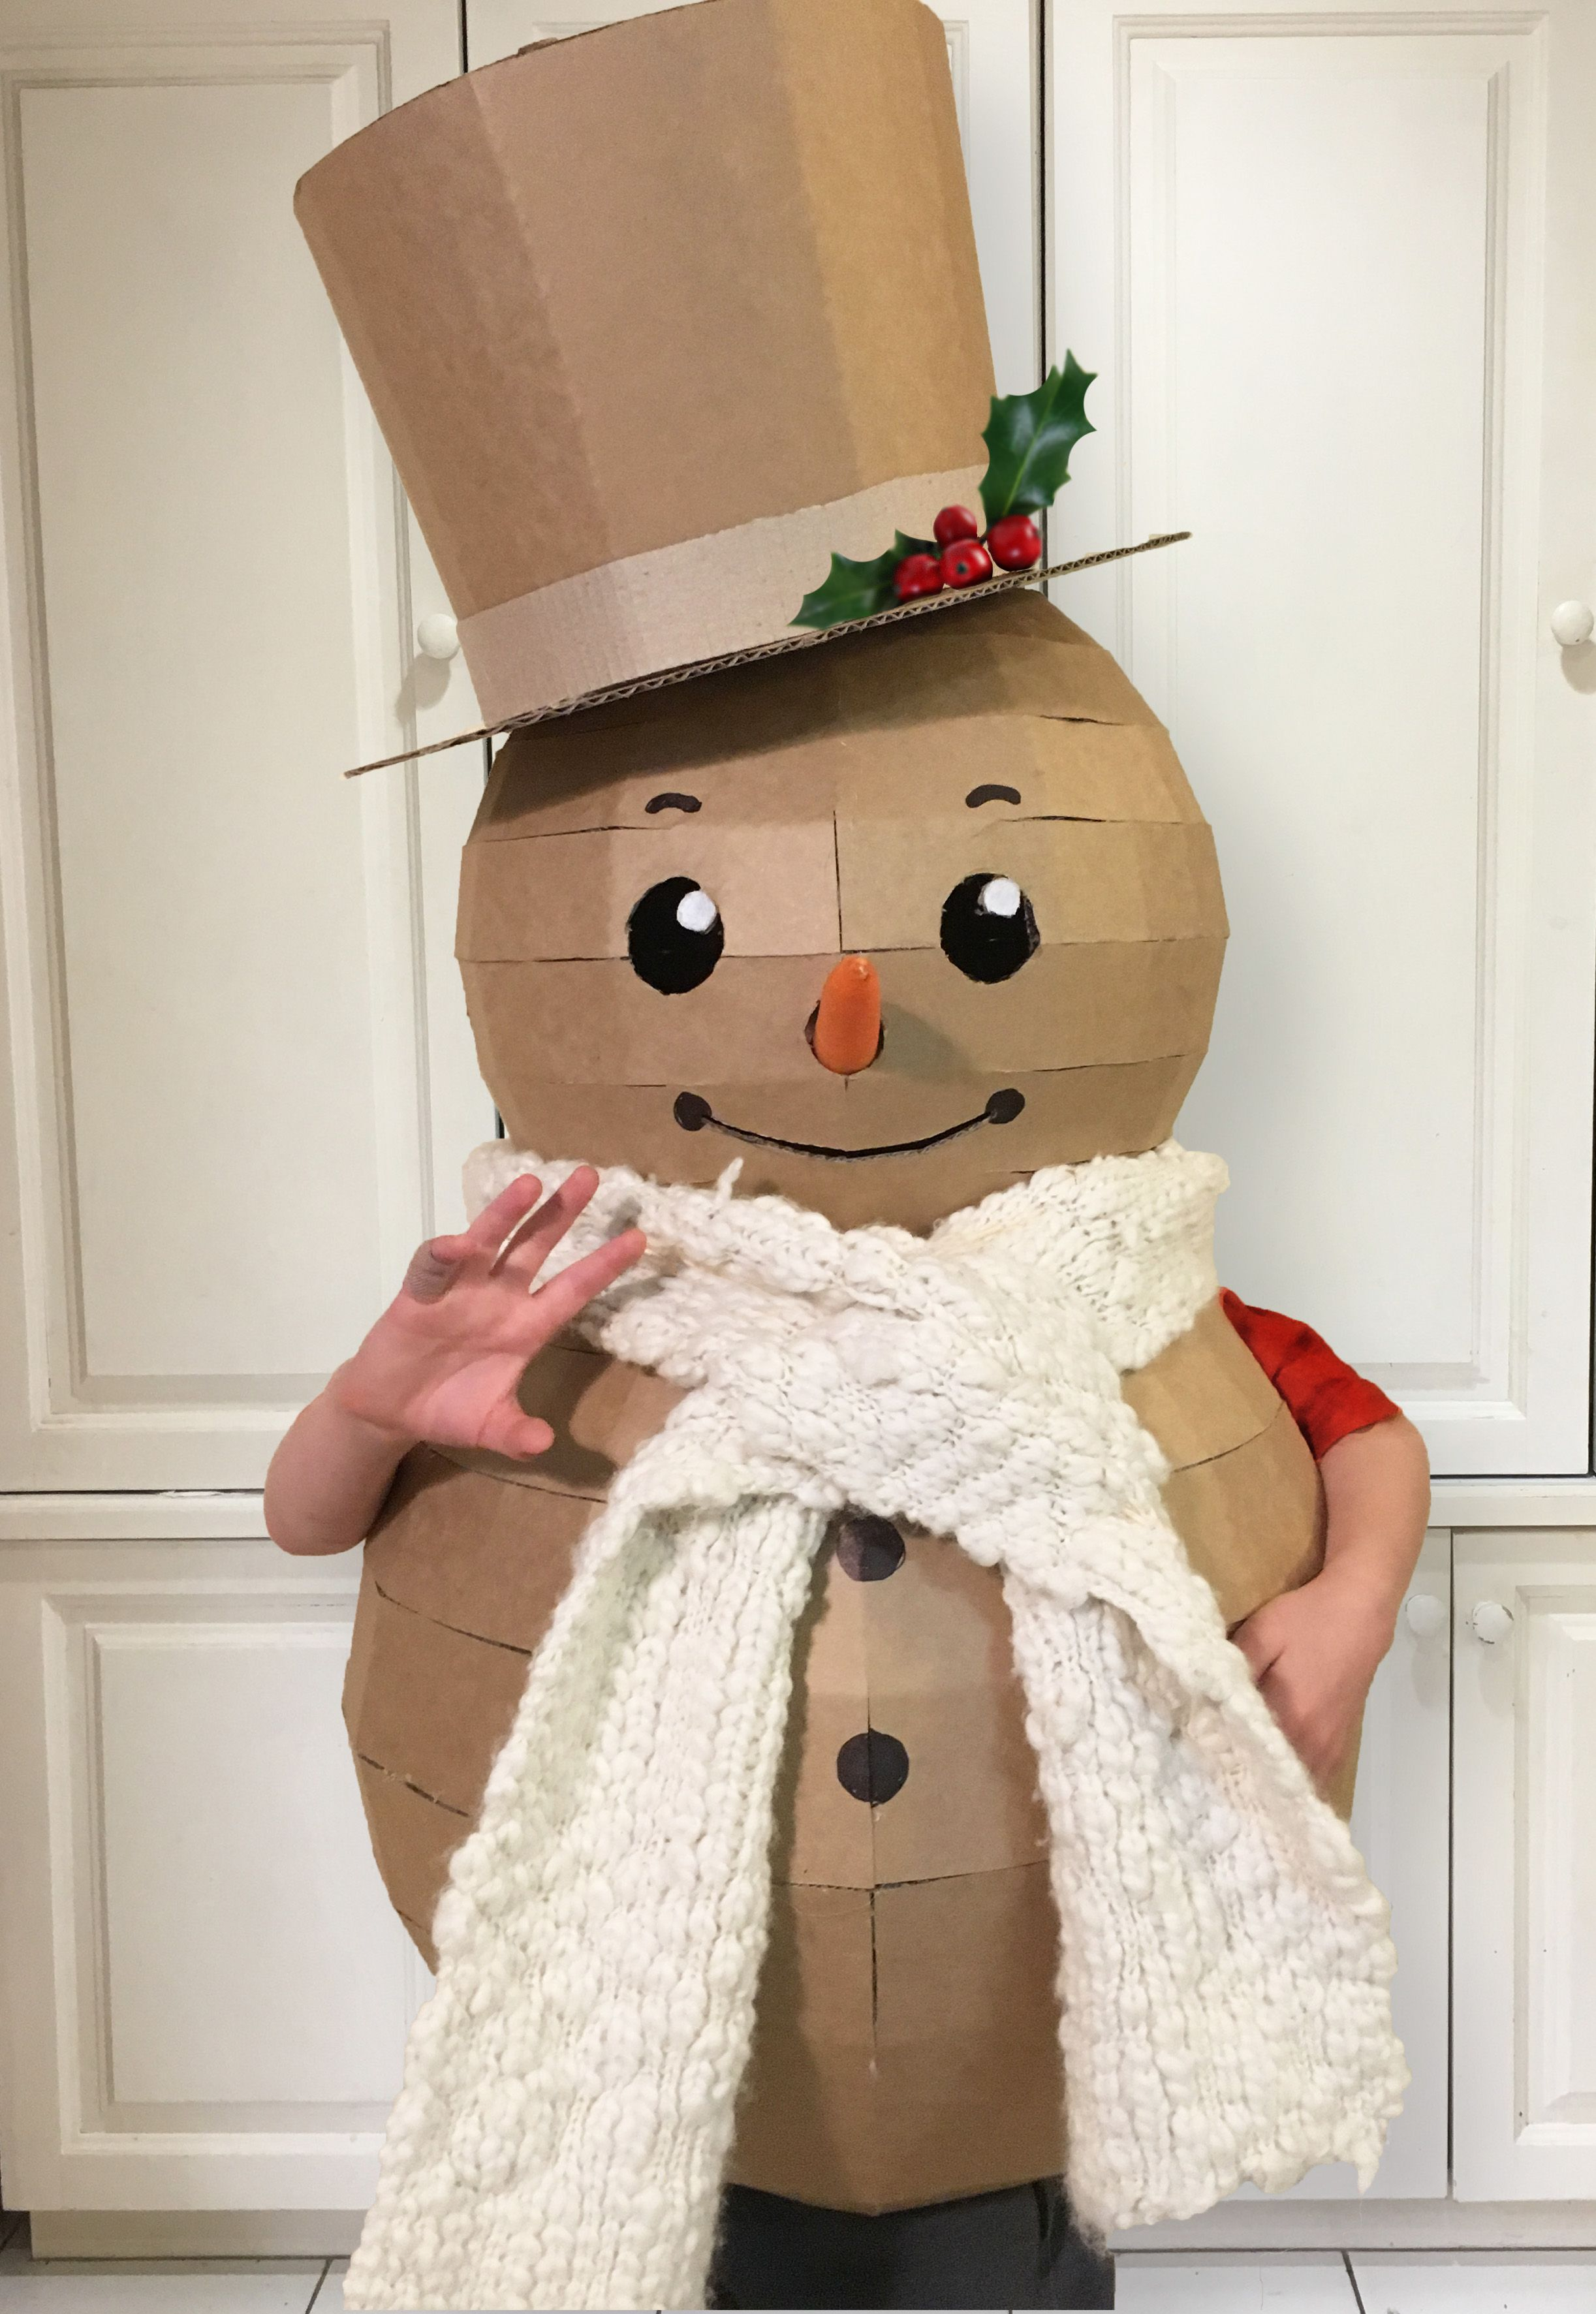 Do you want to build a snowman? How to make a cardboard snowman costume using a downloadable ...